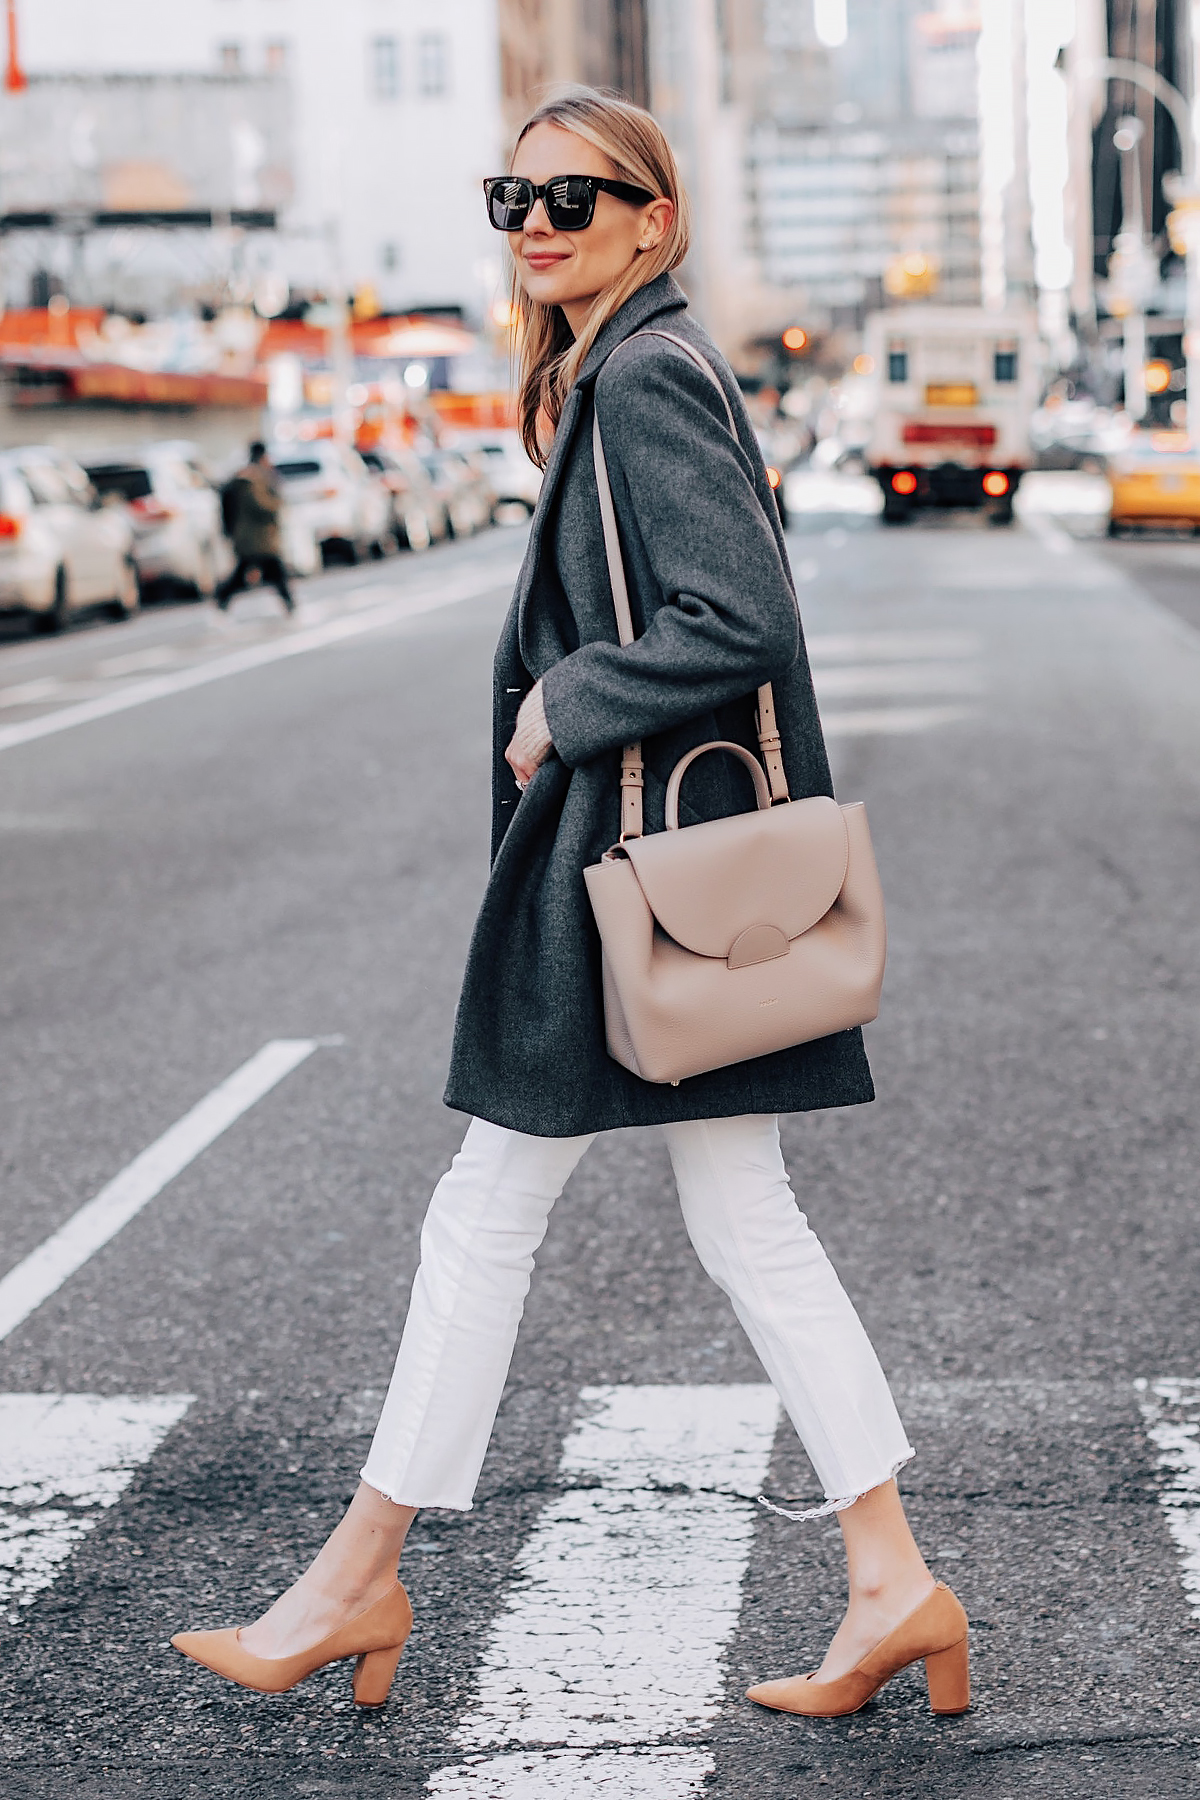 Blonde Woman Wearing HM Grey Wool Coat Polene Grey Handbag Everlane White Crop Ankle Jeans Tan Pumps Fashion Jackson Fashion Blogger Street Style NYFW